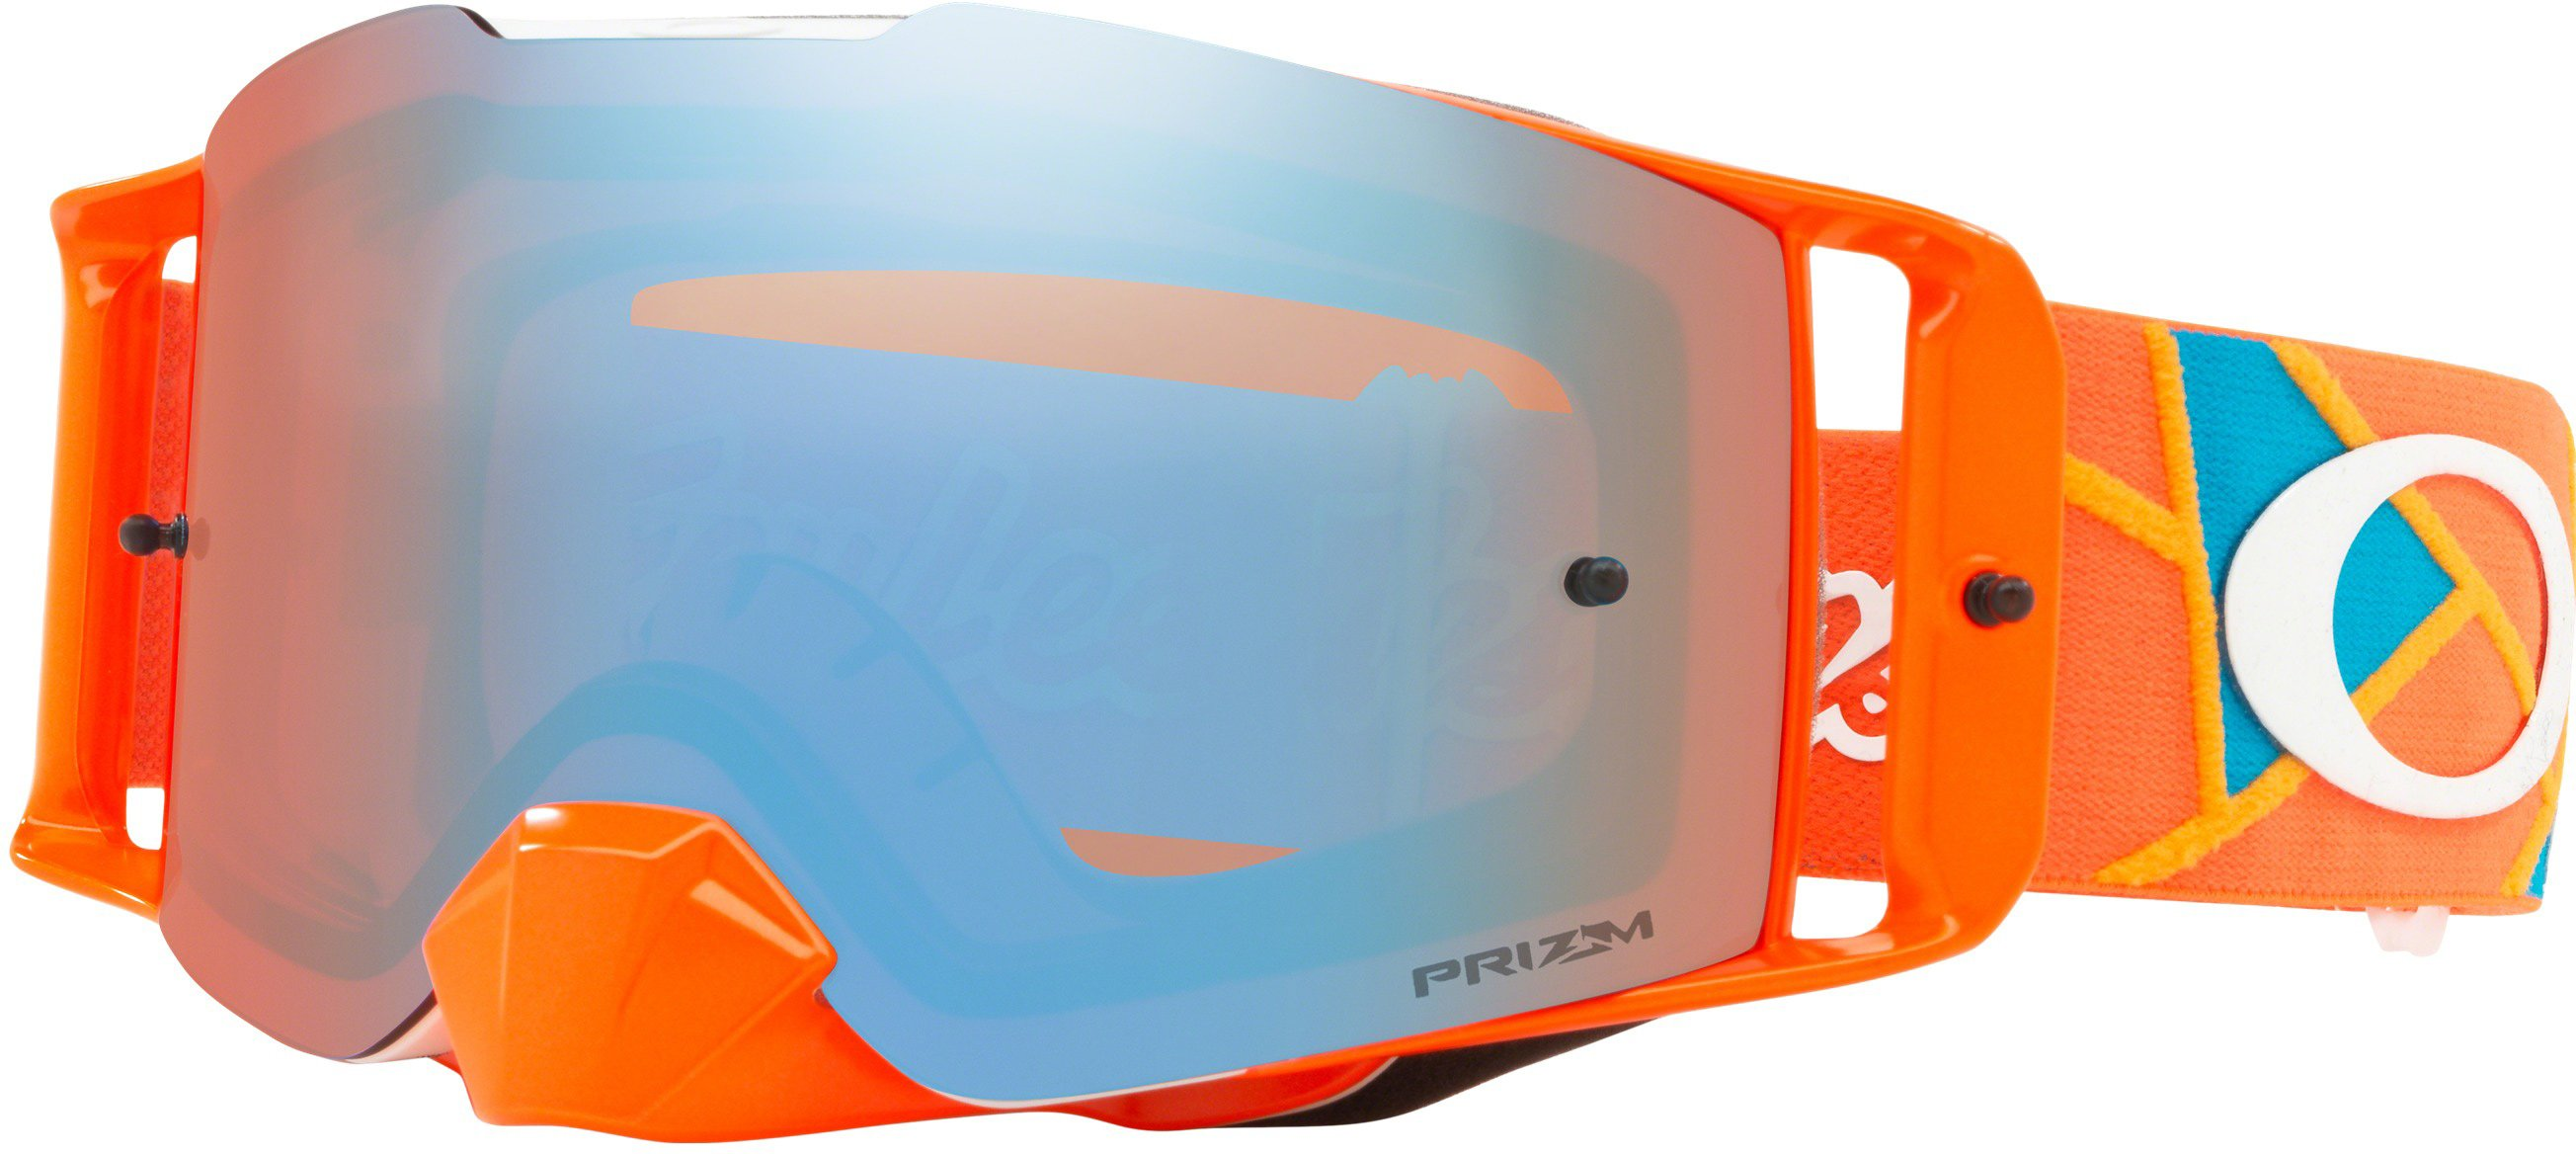 010b10c03 Oakley Front Line MX Troy Lee Designs Series Goggles